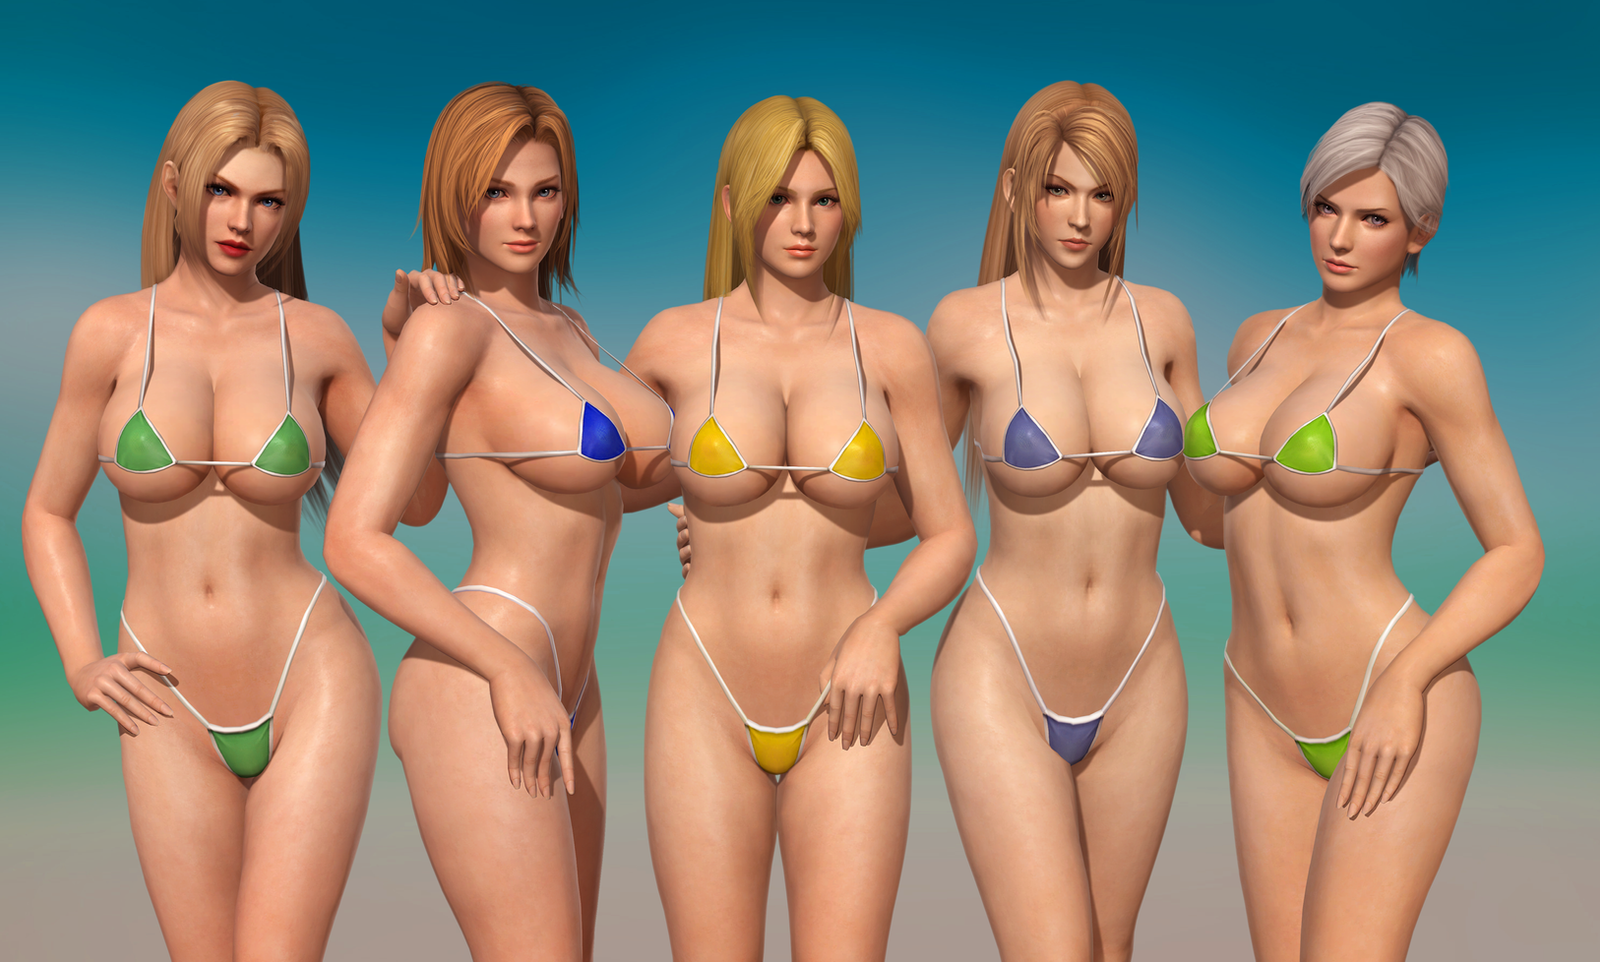 5_micro_bikini_babes_by_radianteld-dbdn95n.png